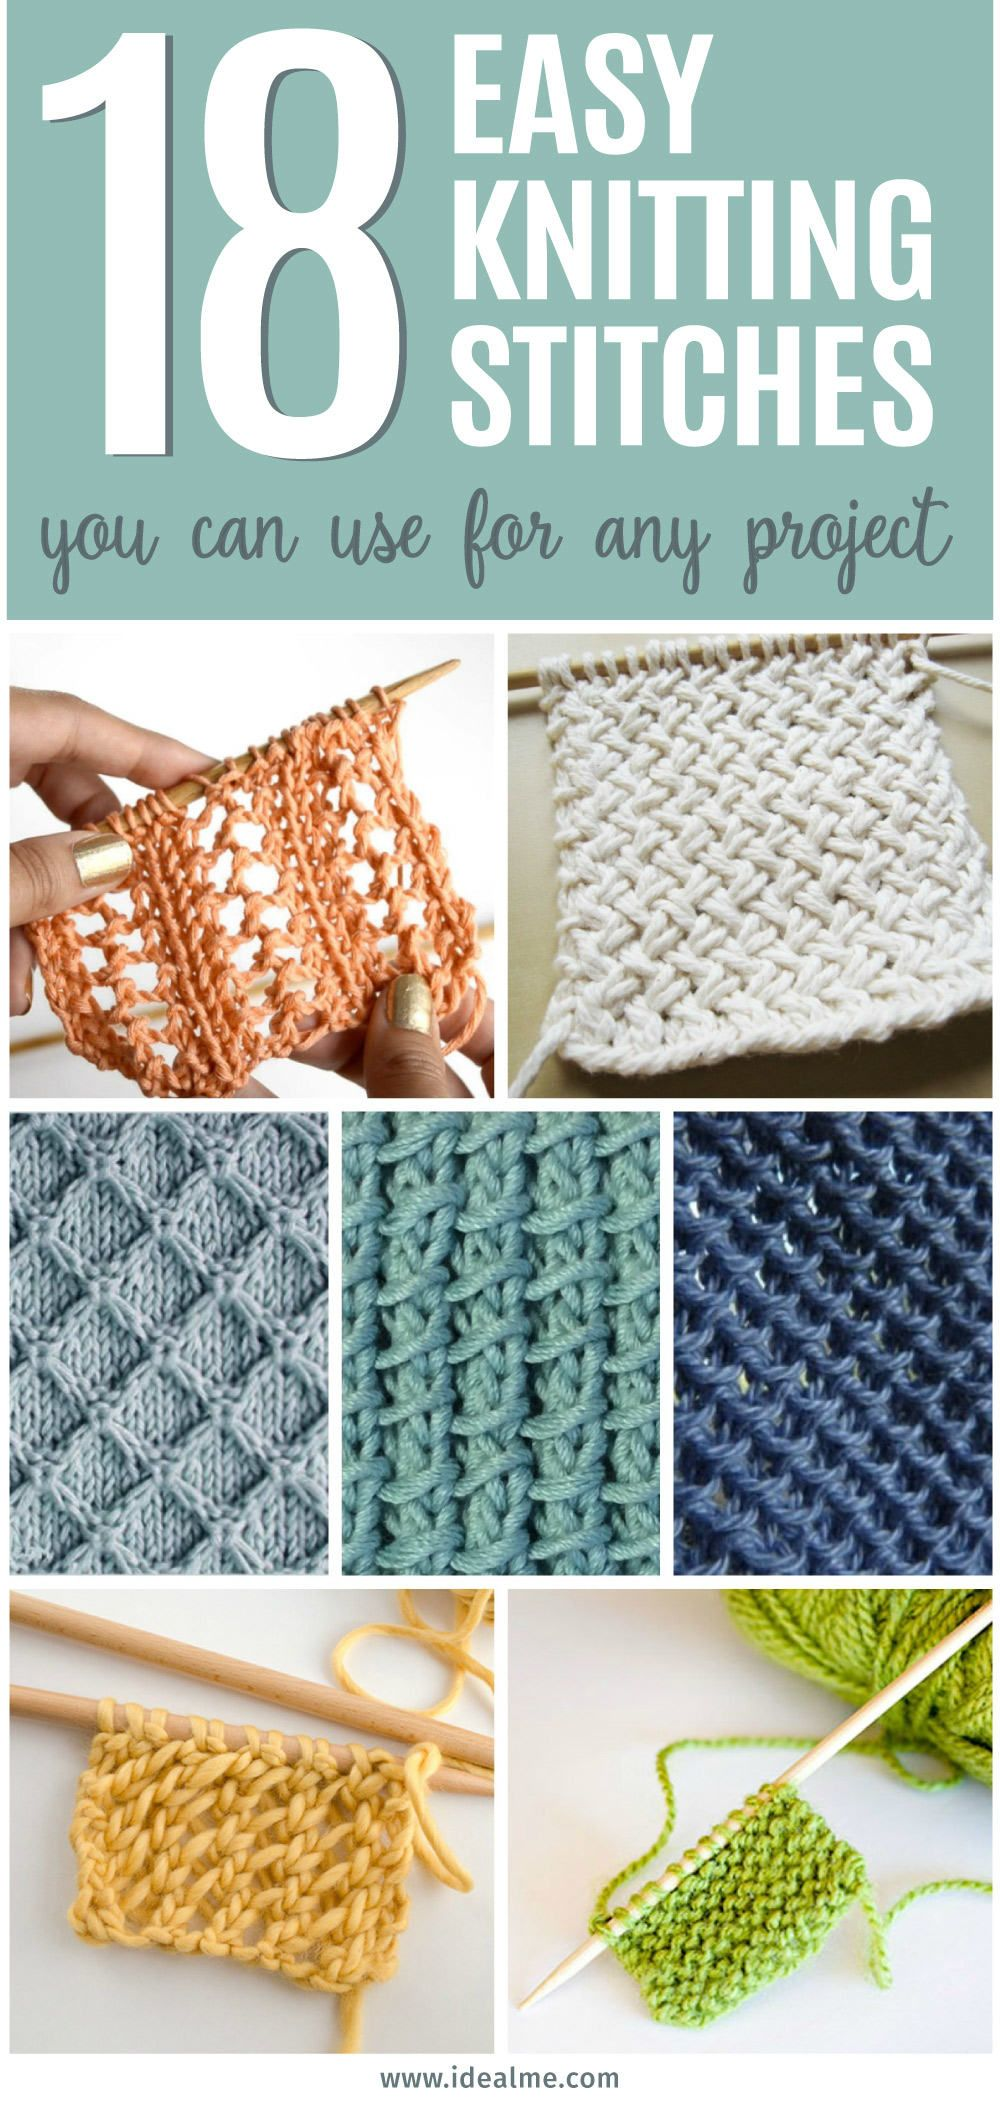 18 Easy Knitting Stitches You Can Use for Any Project #knittingpatternsfree